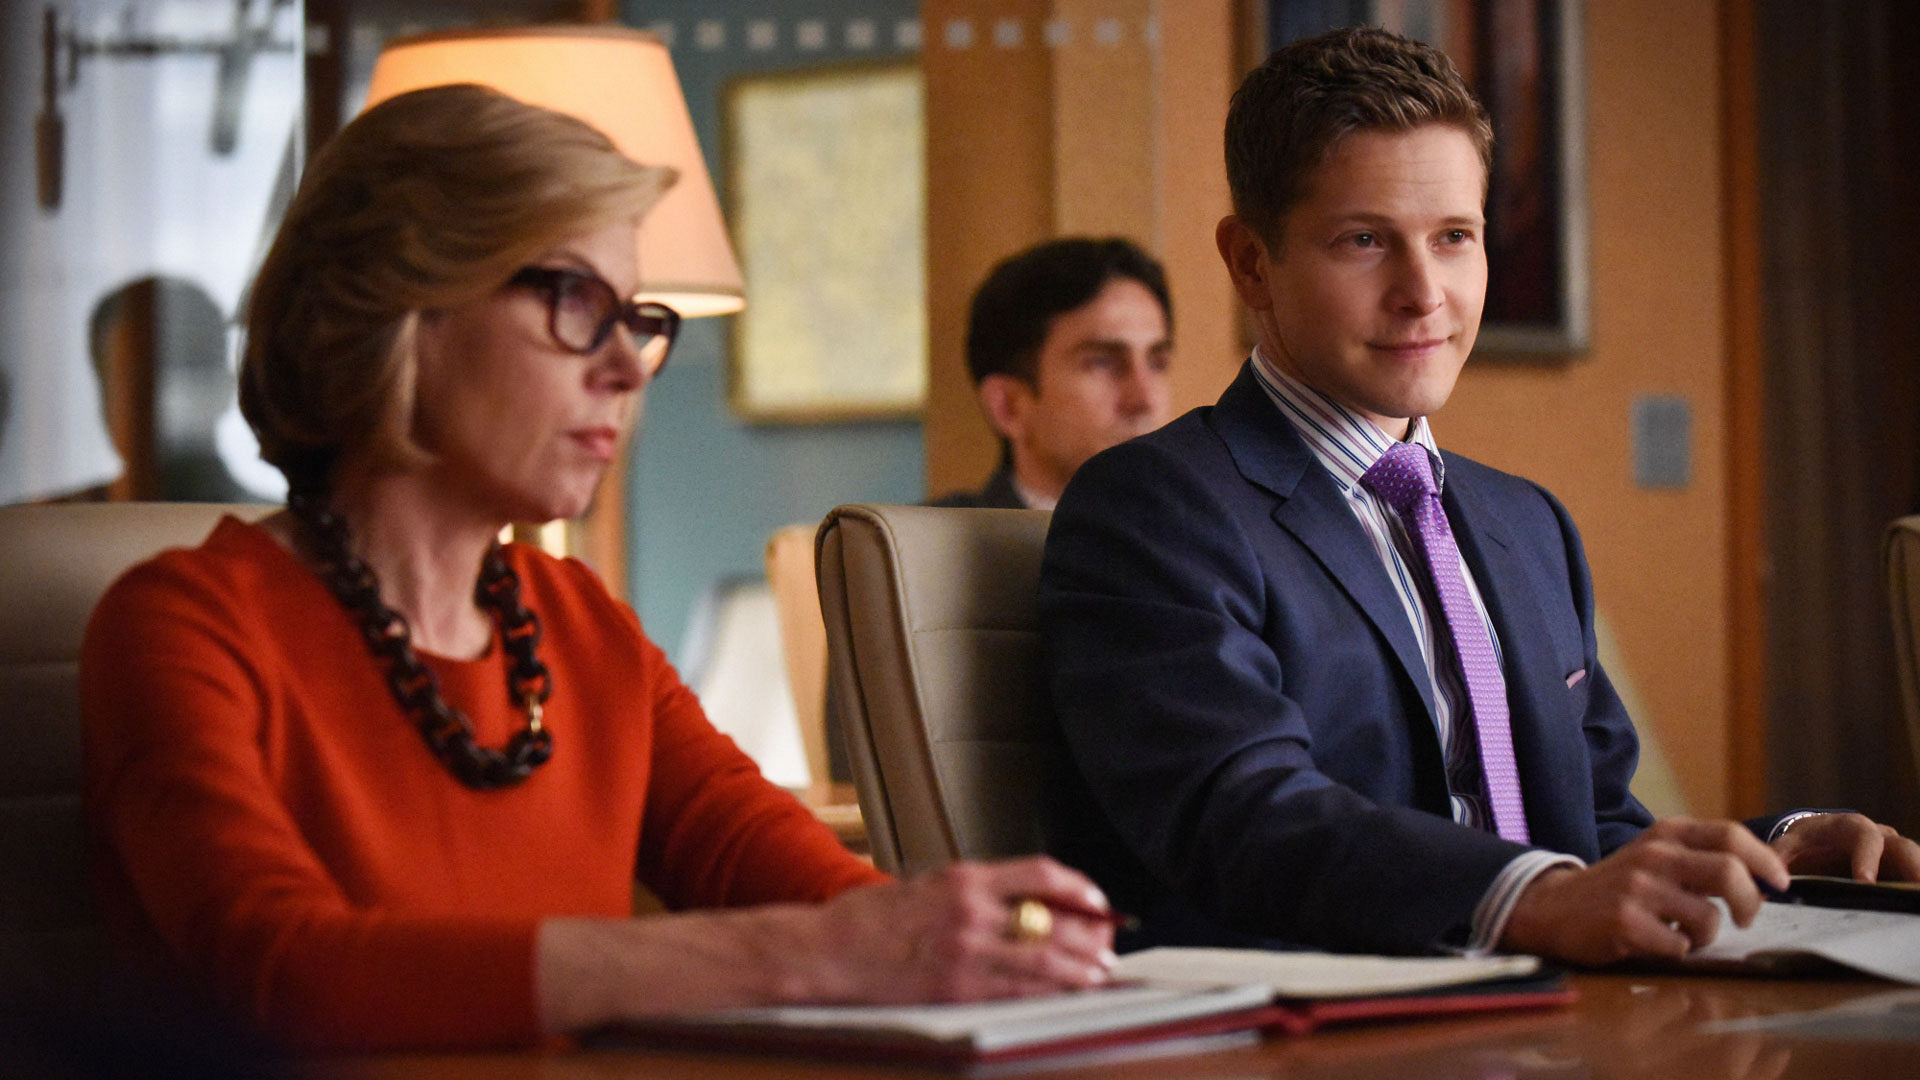 Christine Baranski as Diane Lockhart and Matt Czuchry as Carey Agos